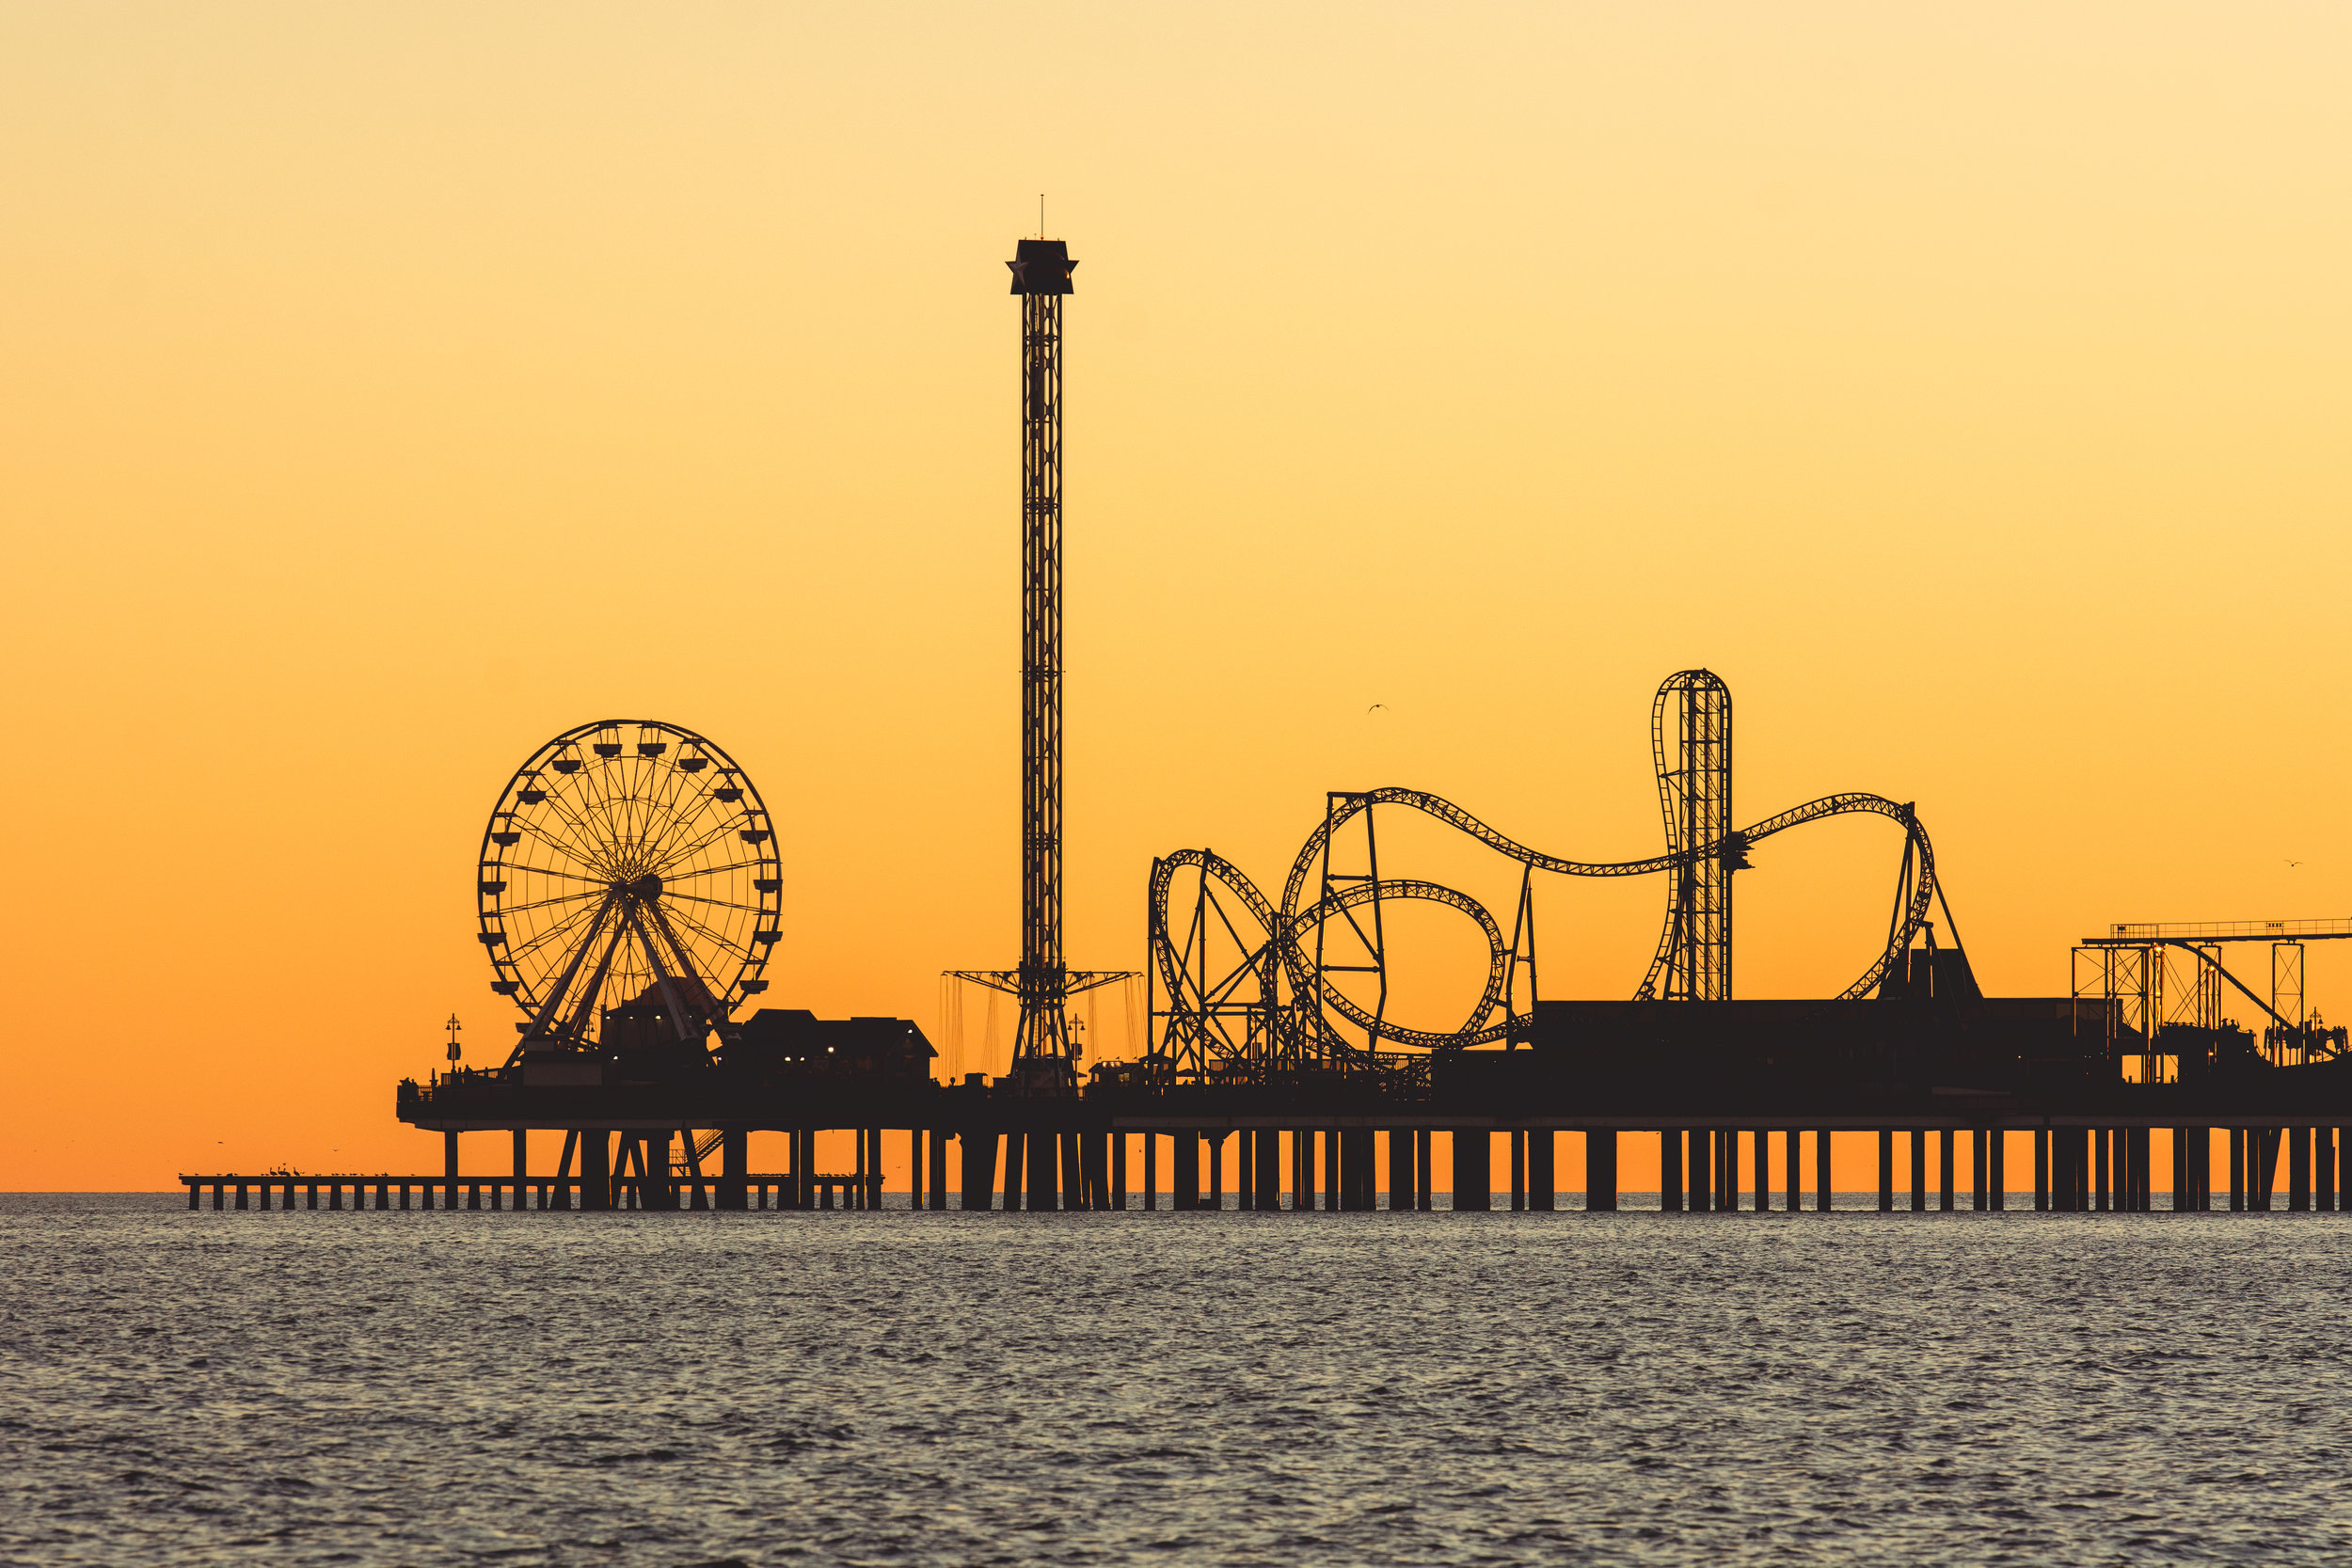 Photo Title: Pleasure Pier Photo by: Matthew Specht